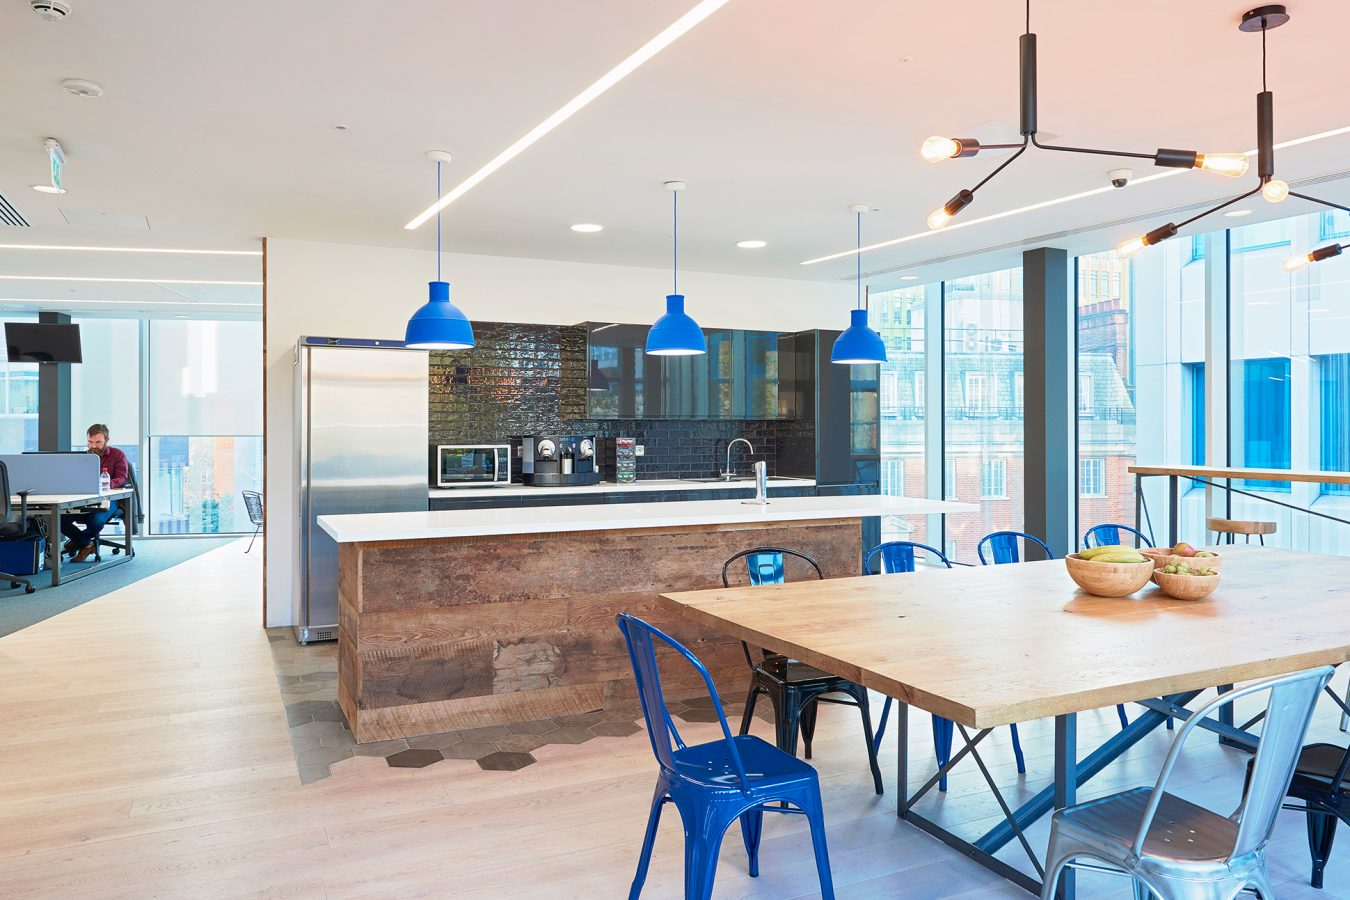 Kitchen fit out in blue, industrial style kitchen, modern design, pendant lights.